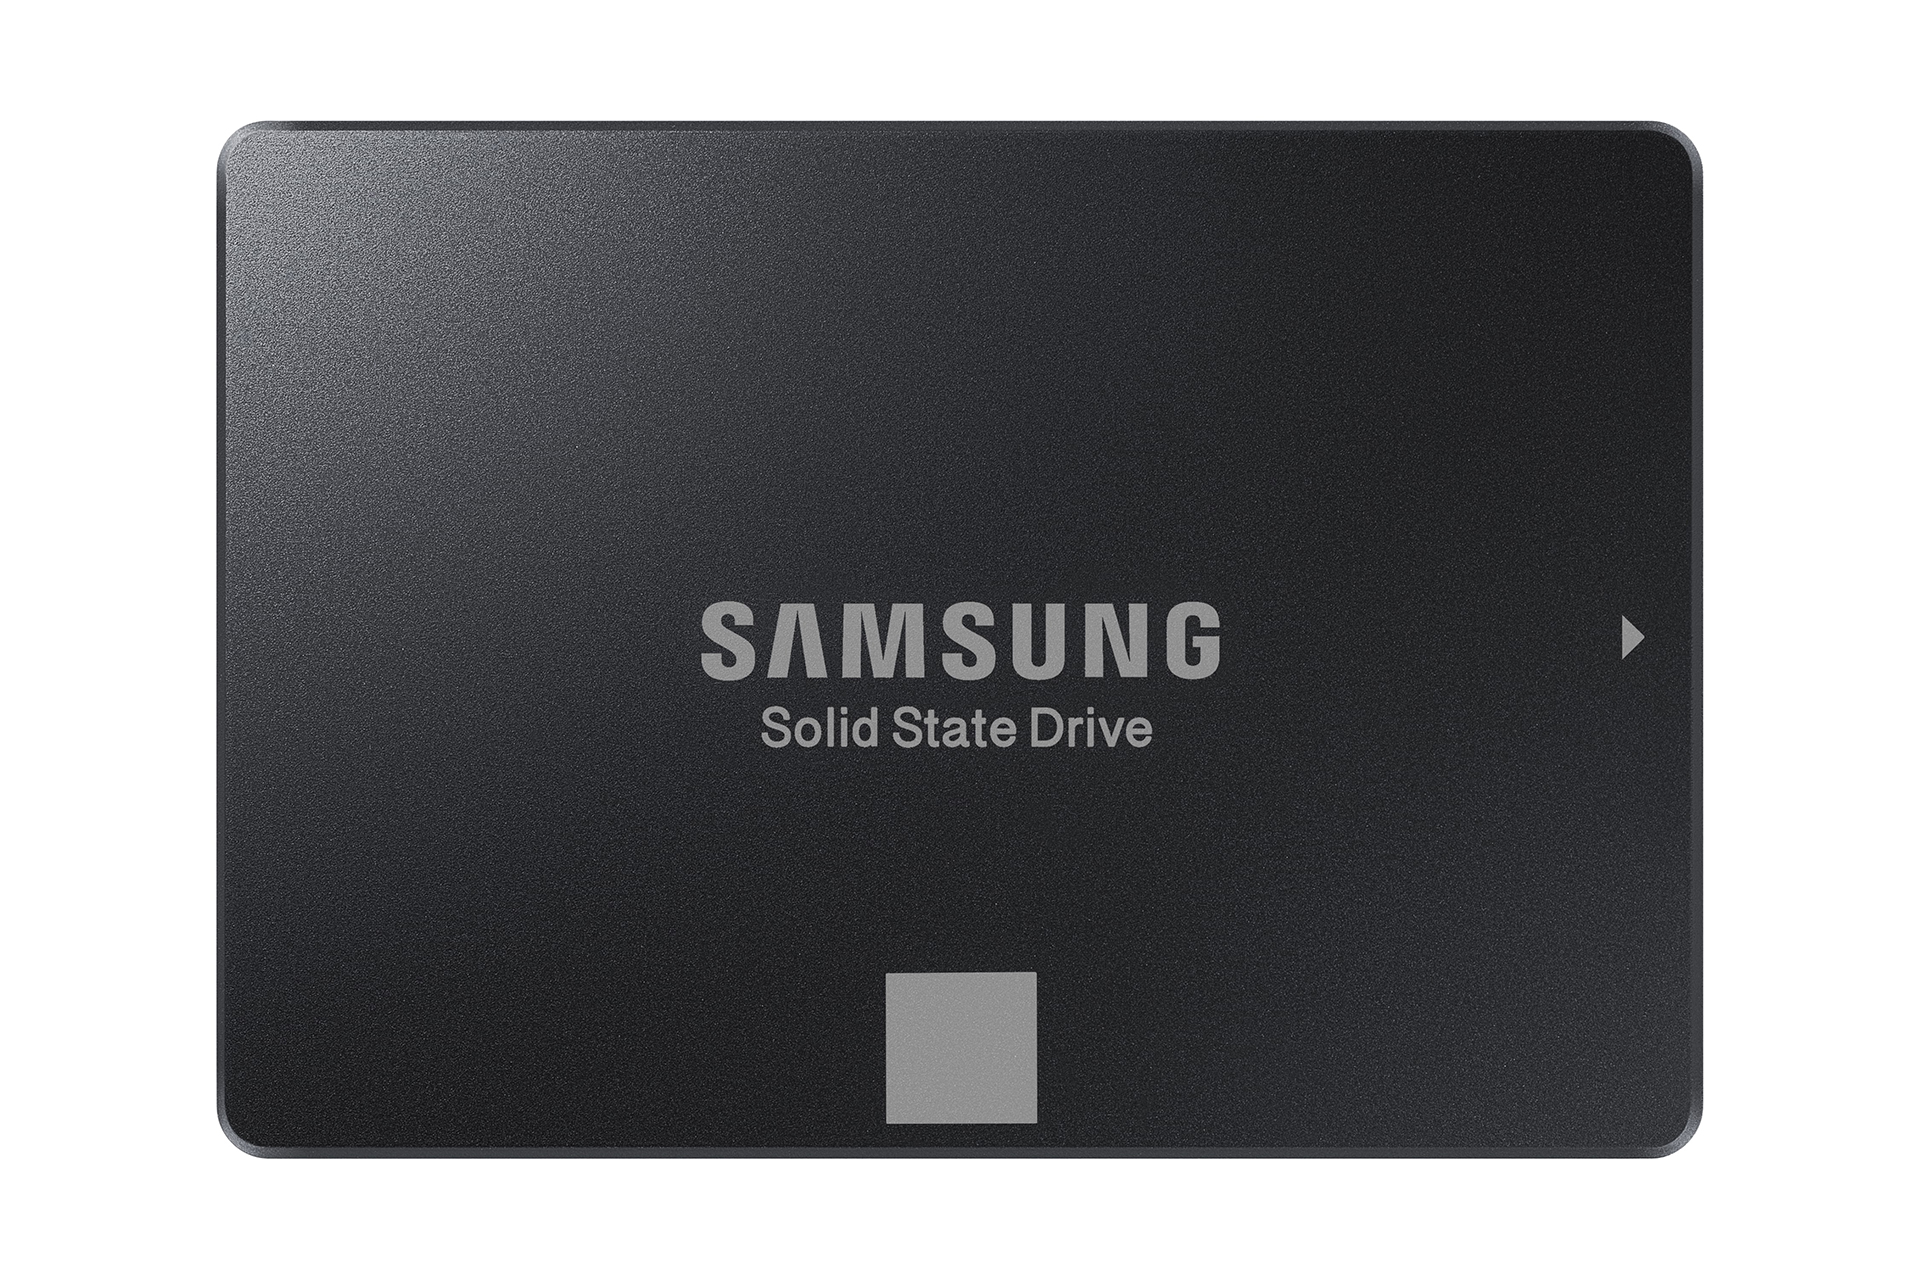 Samsung 750 EVO SSD features a 500GB capacity and a very affordable price